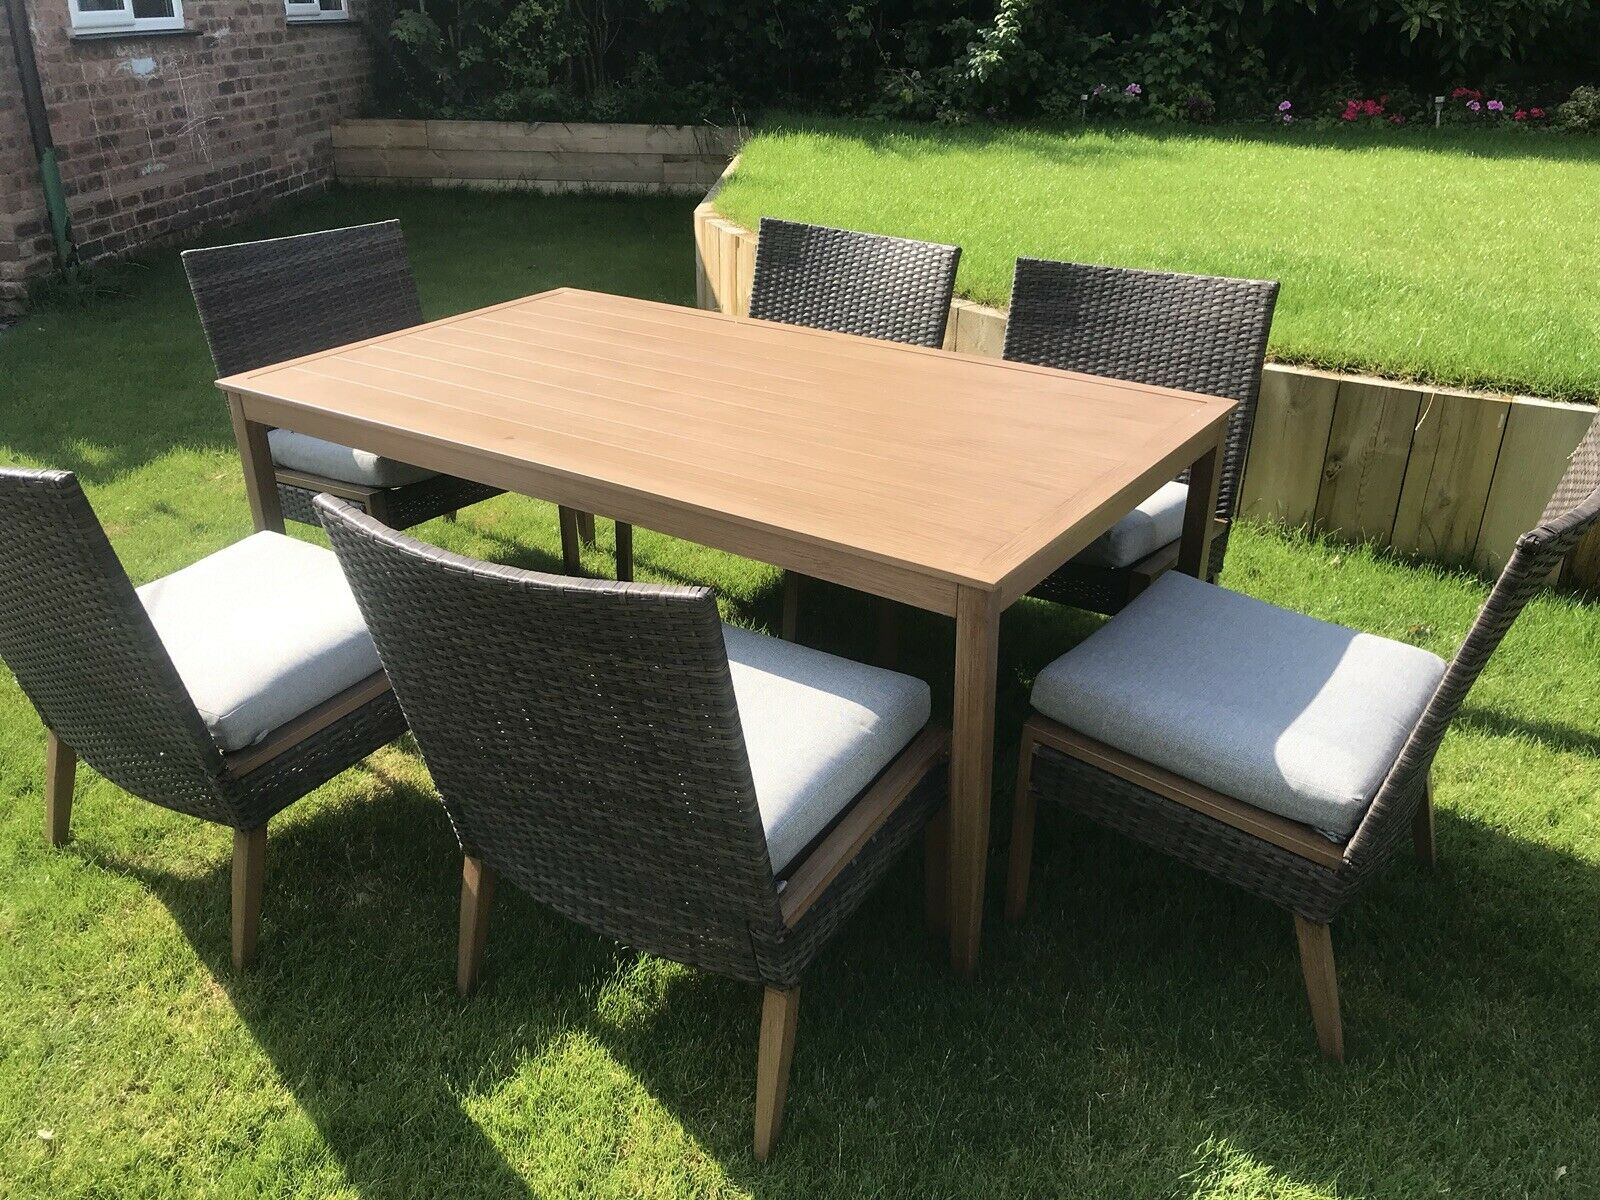 6 Seater Patio Dining Set Outdoor Garden Furniture Table And Chairs With Cushion with proportions 1600 X 1200